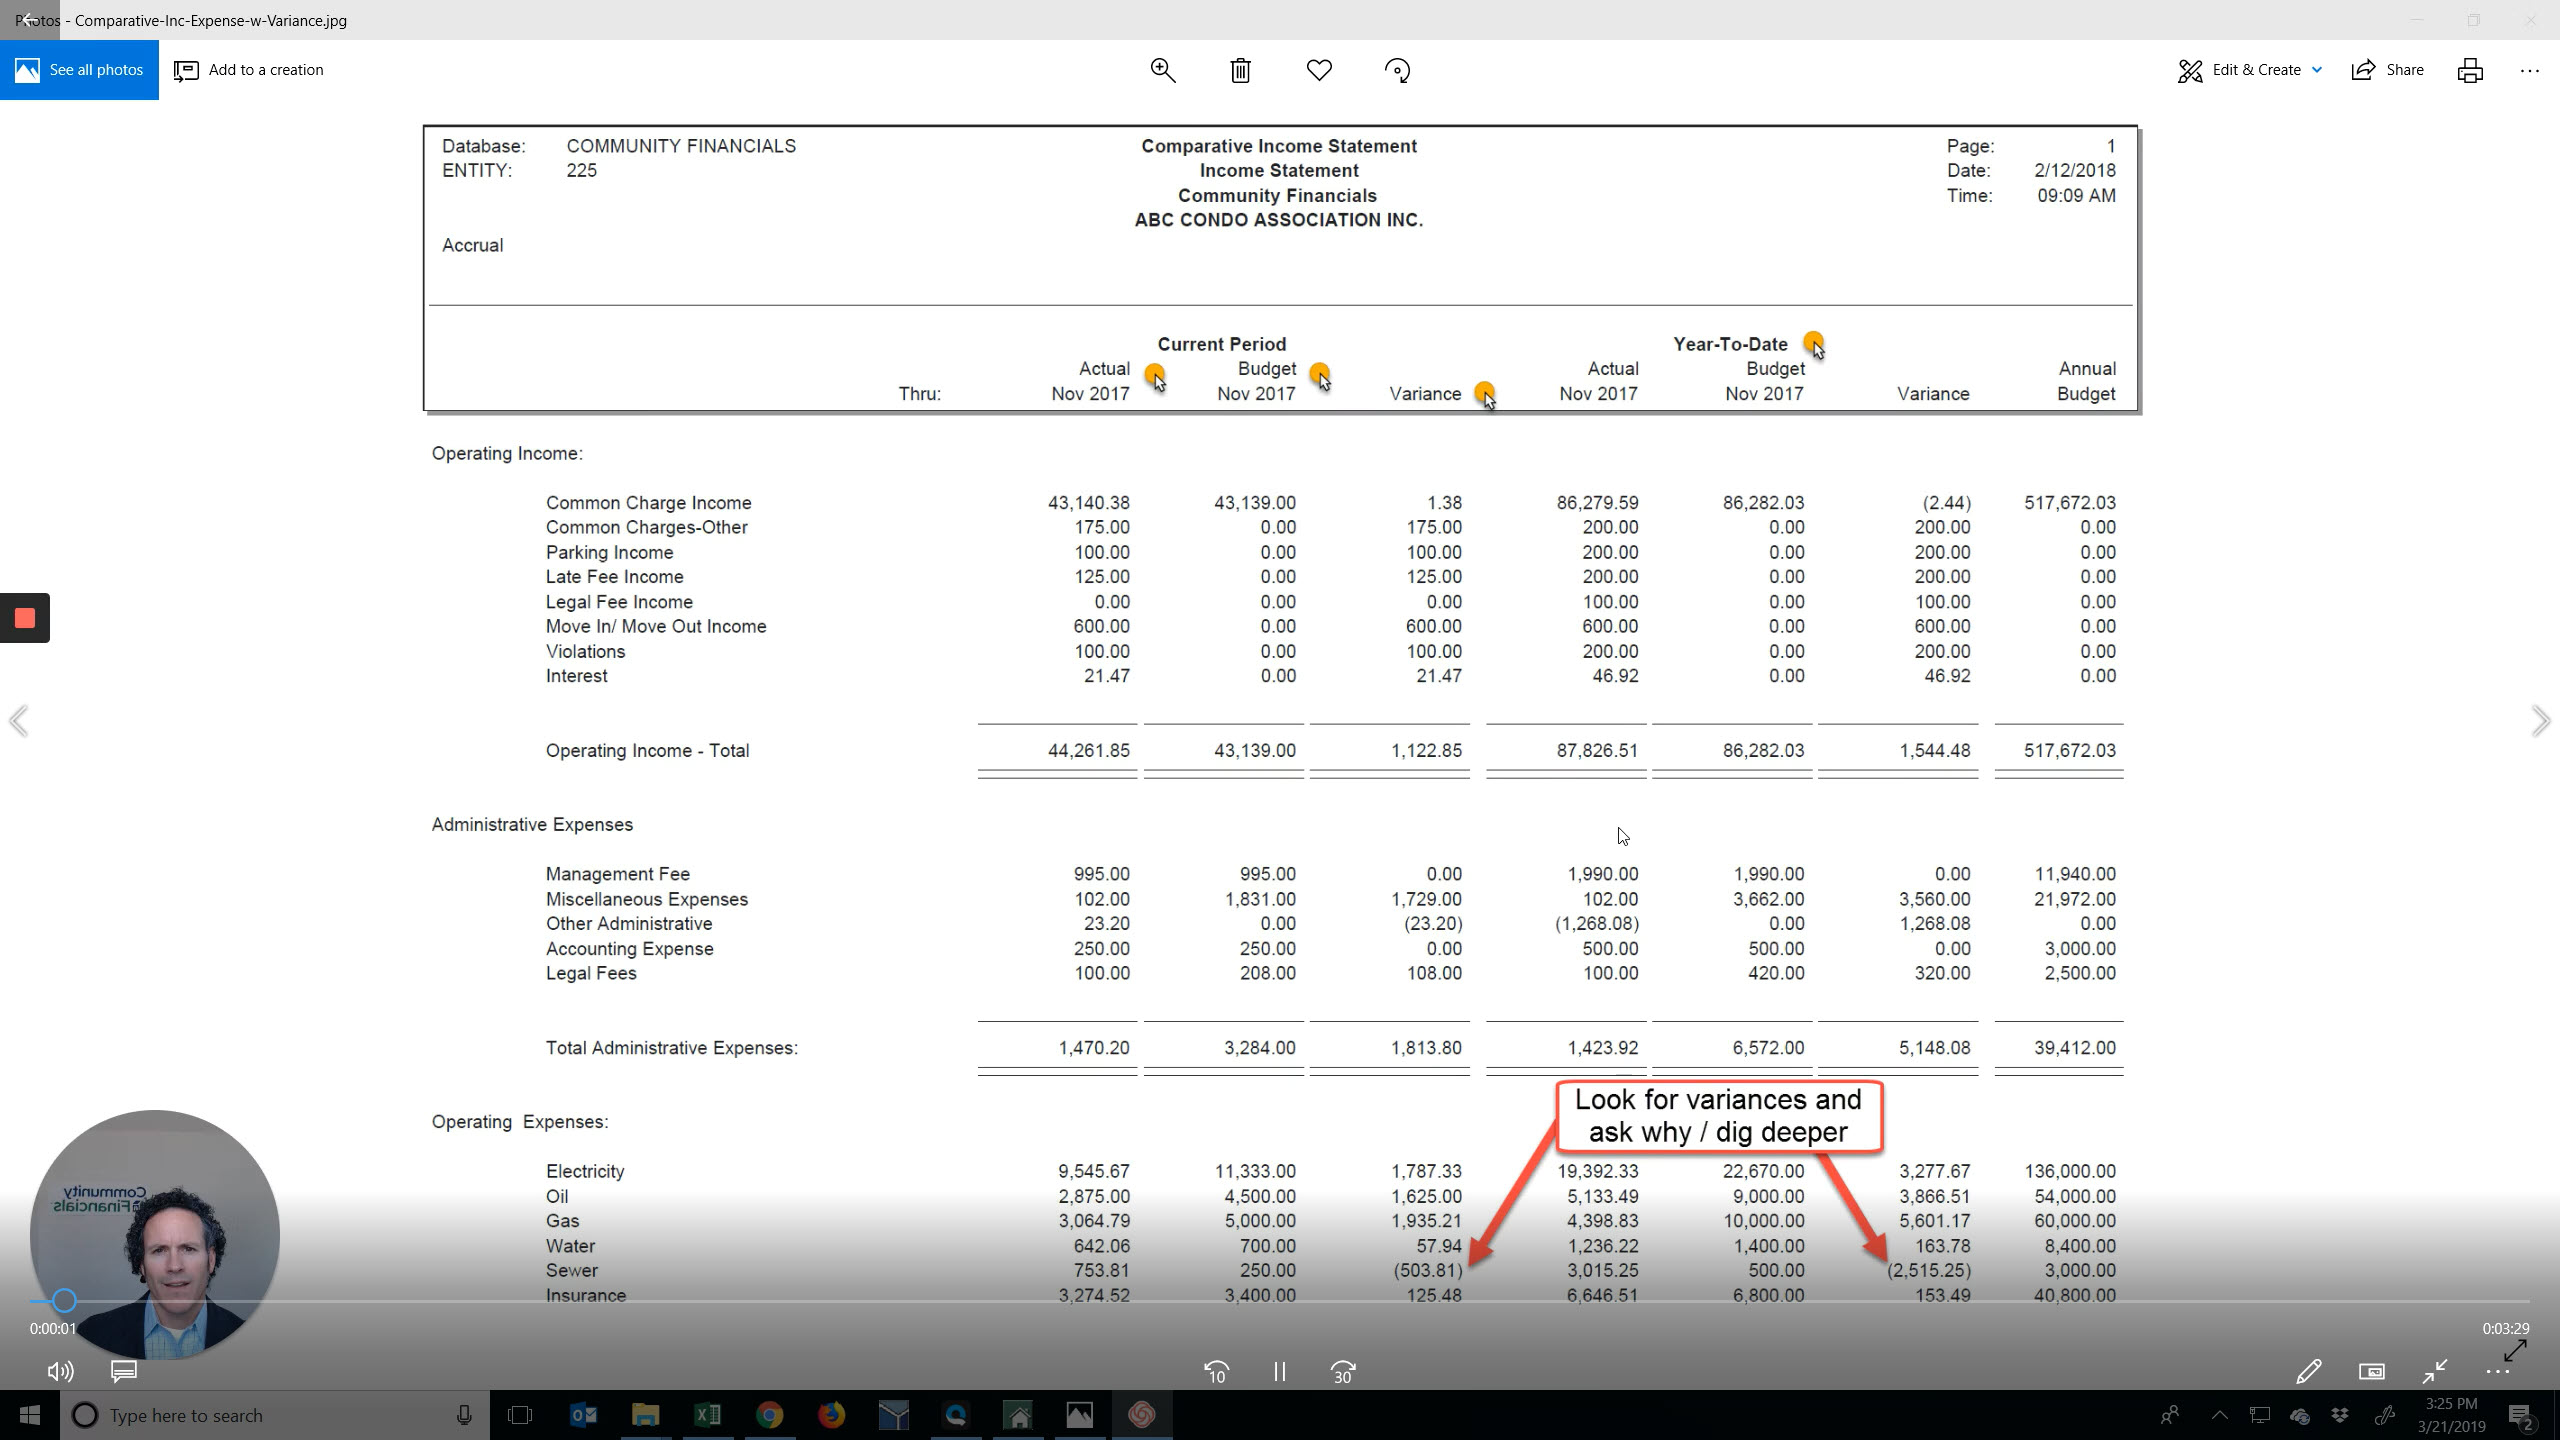 Comparative Income Statement Video Thumbnail